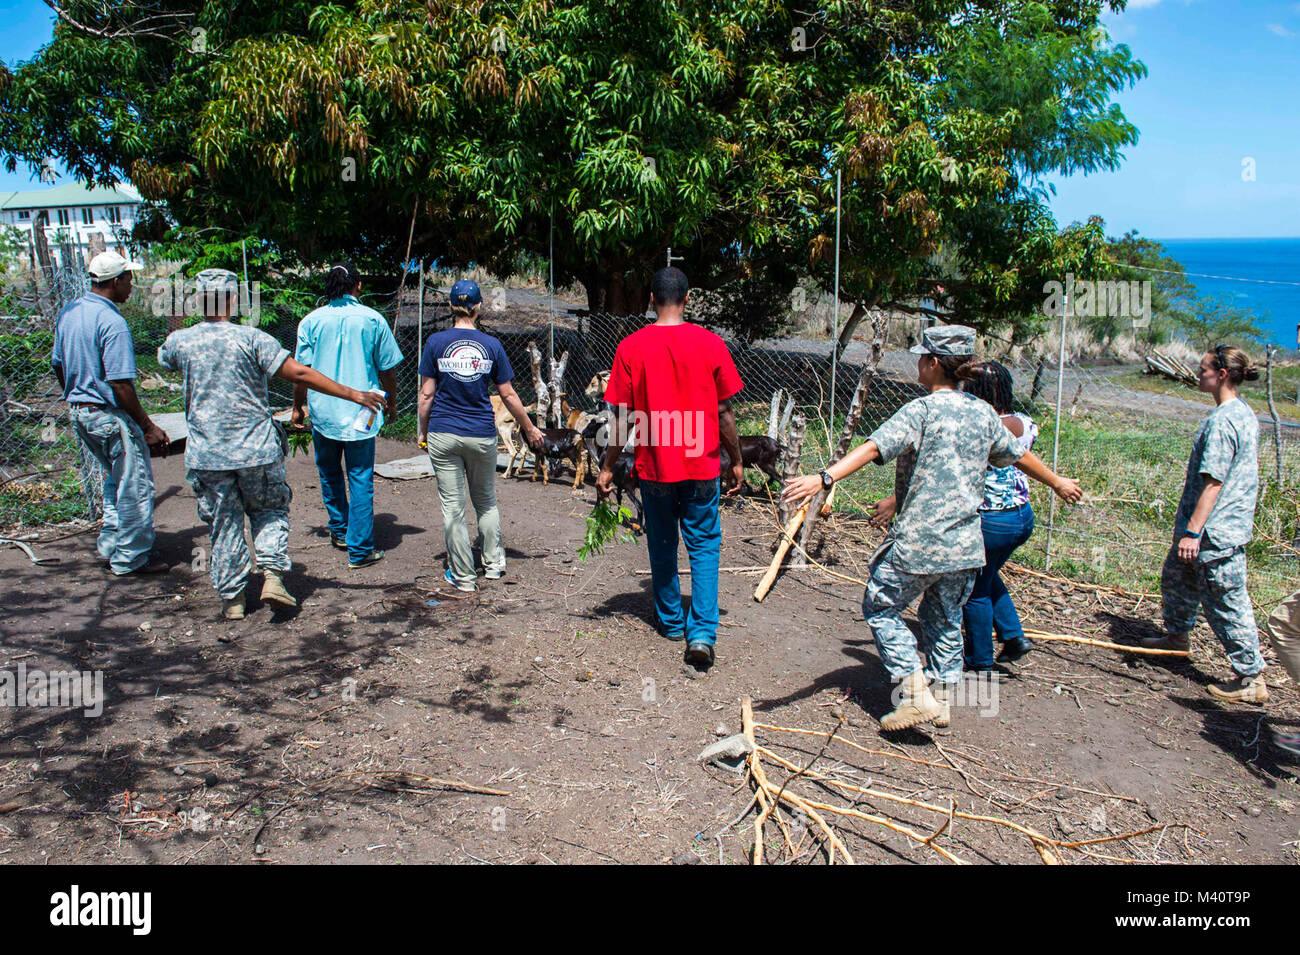 150805-N-NK134-103 PORTSMOUTH, Dominica (Aug. 5, 2015) - Army veterinarians and veterinarian technicians along with - Stock Image